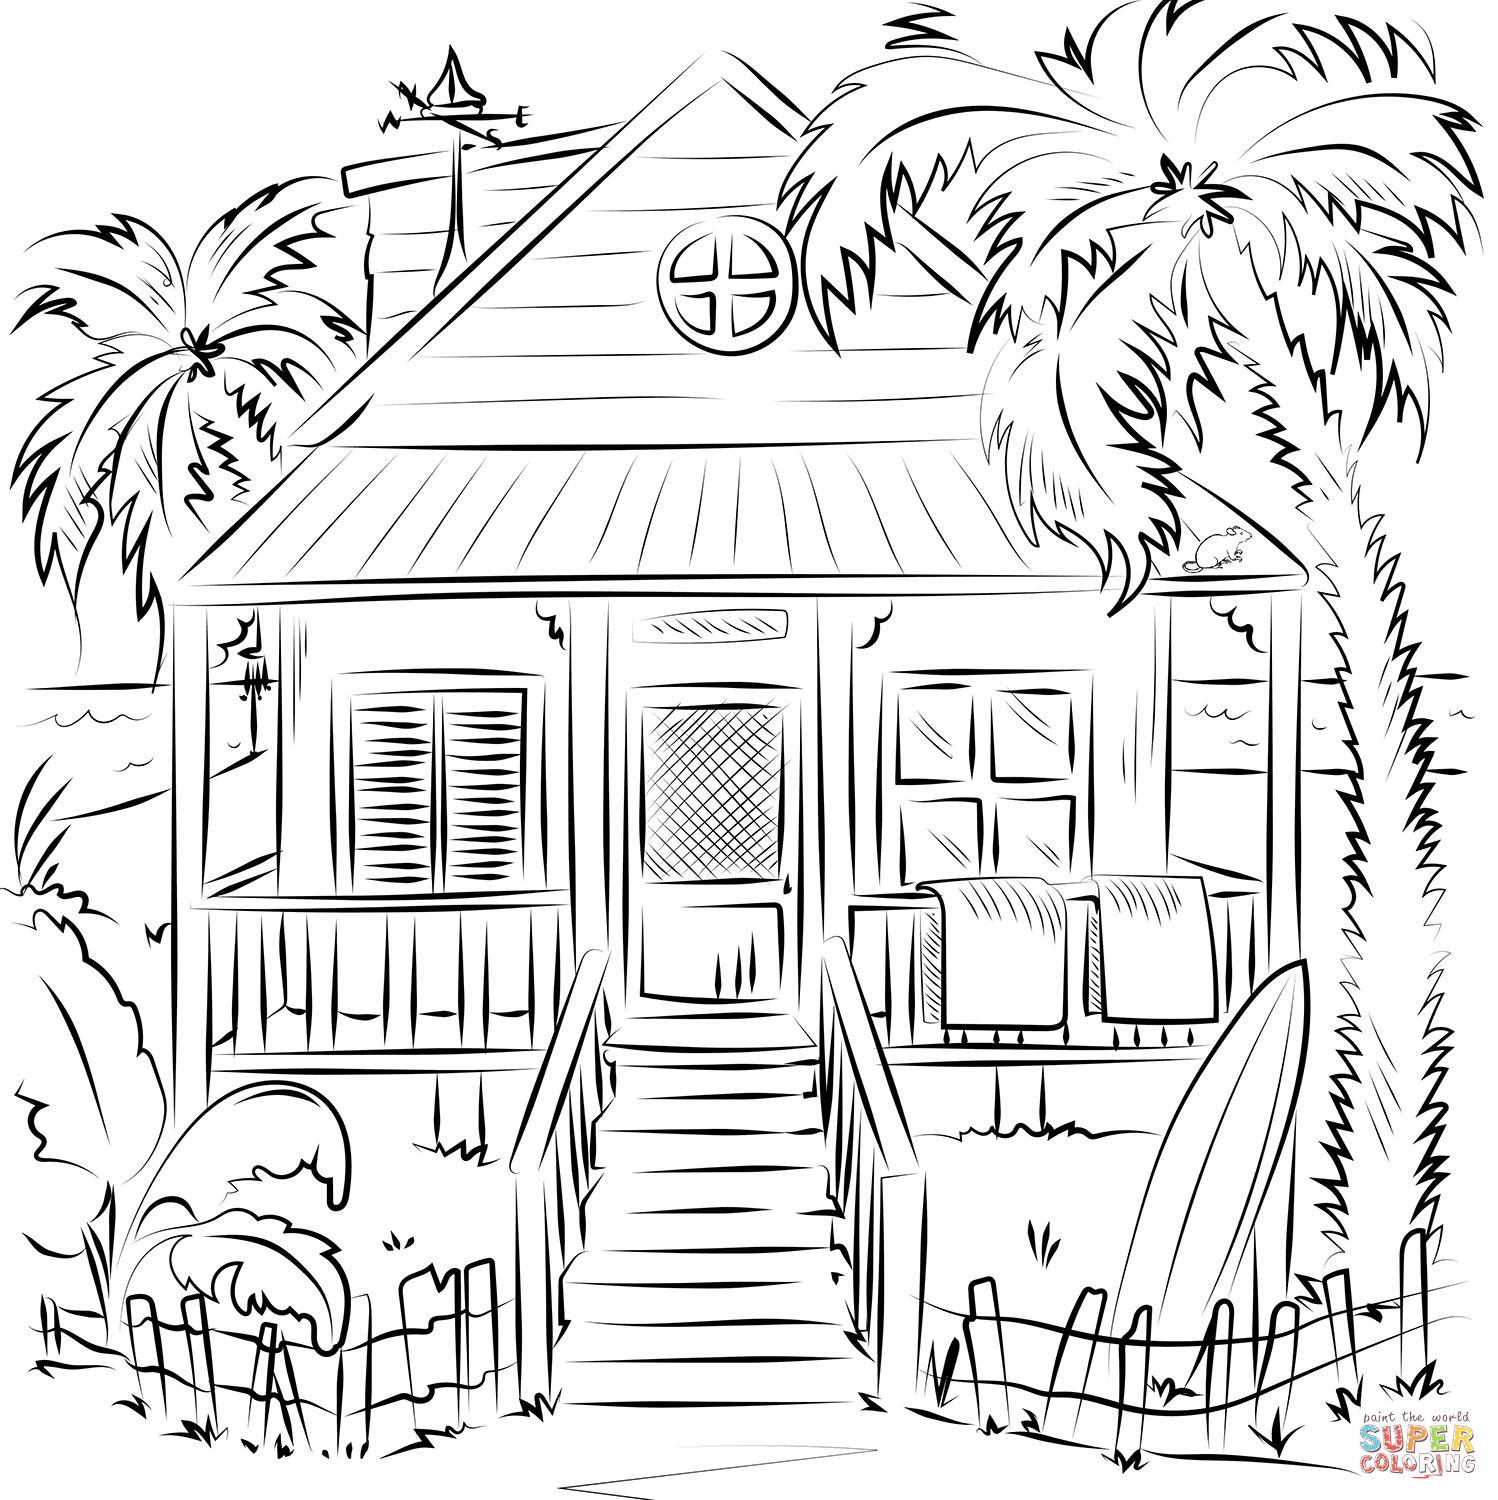 home coloring image beach house coloring page free printable coloring pages home coloring image